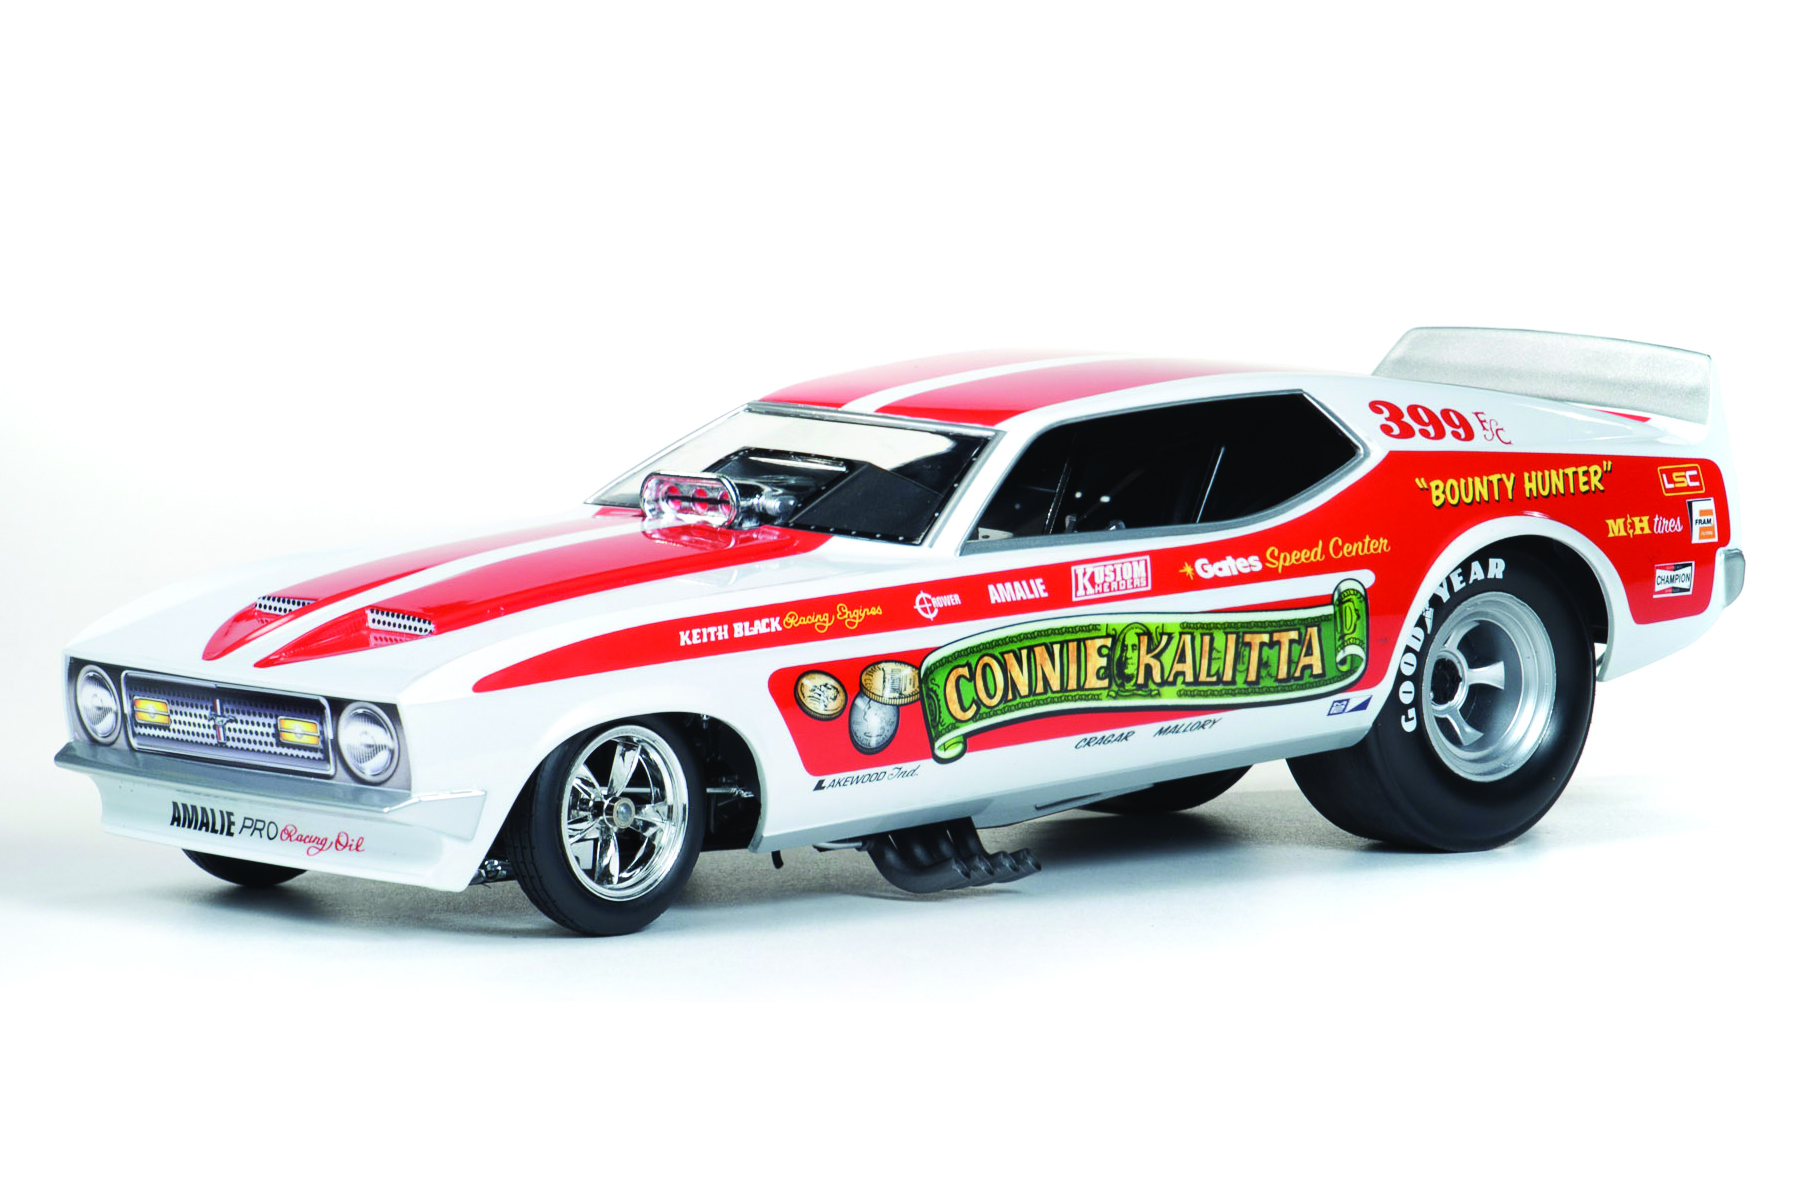 Richard Petty Mustang >> Bounty Hunter 1972 Mustang Funny Car (Connie Kalitta) | Round2